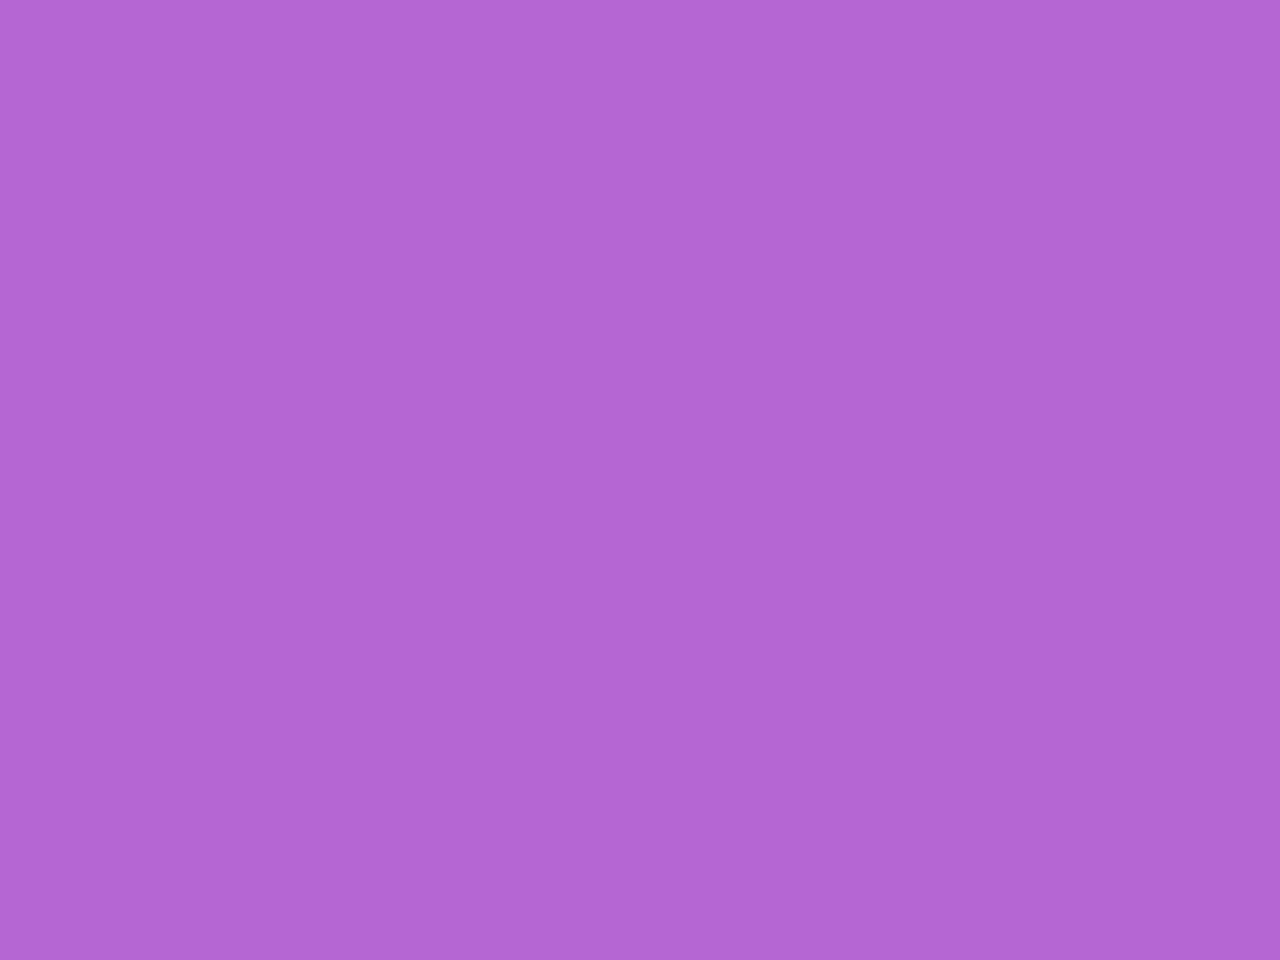 1280x960 Rich Lilac Solid Color Background